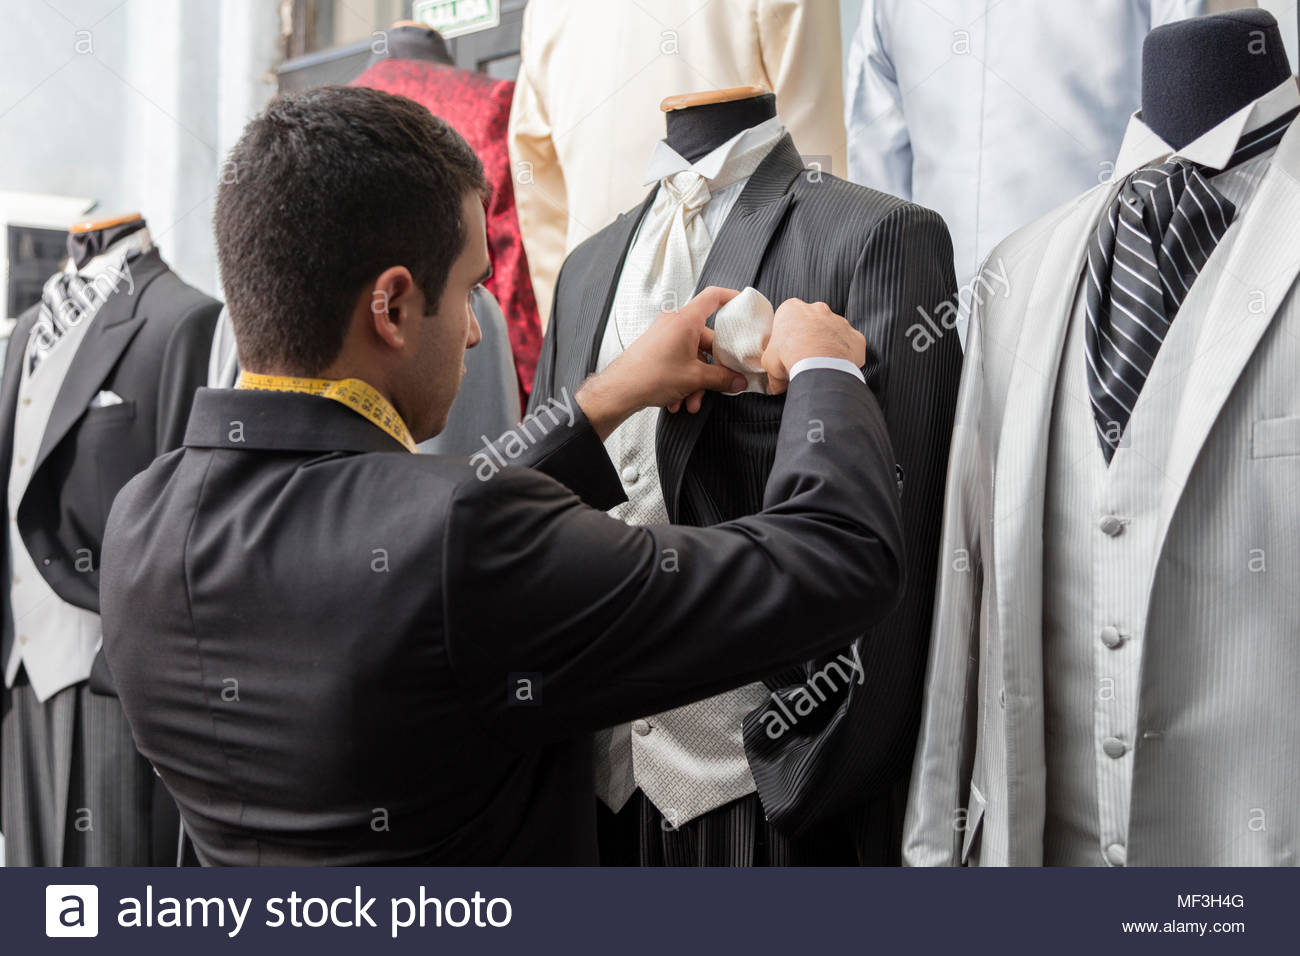 Tailor putting dress handkerchief into tuxedo in tailor shop - Stock Image